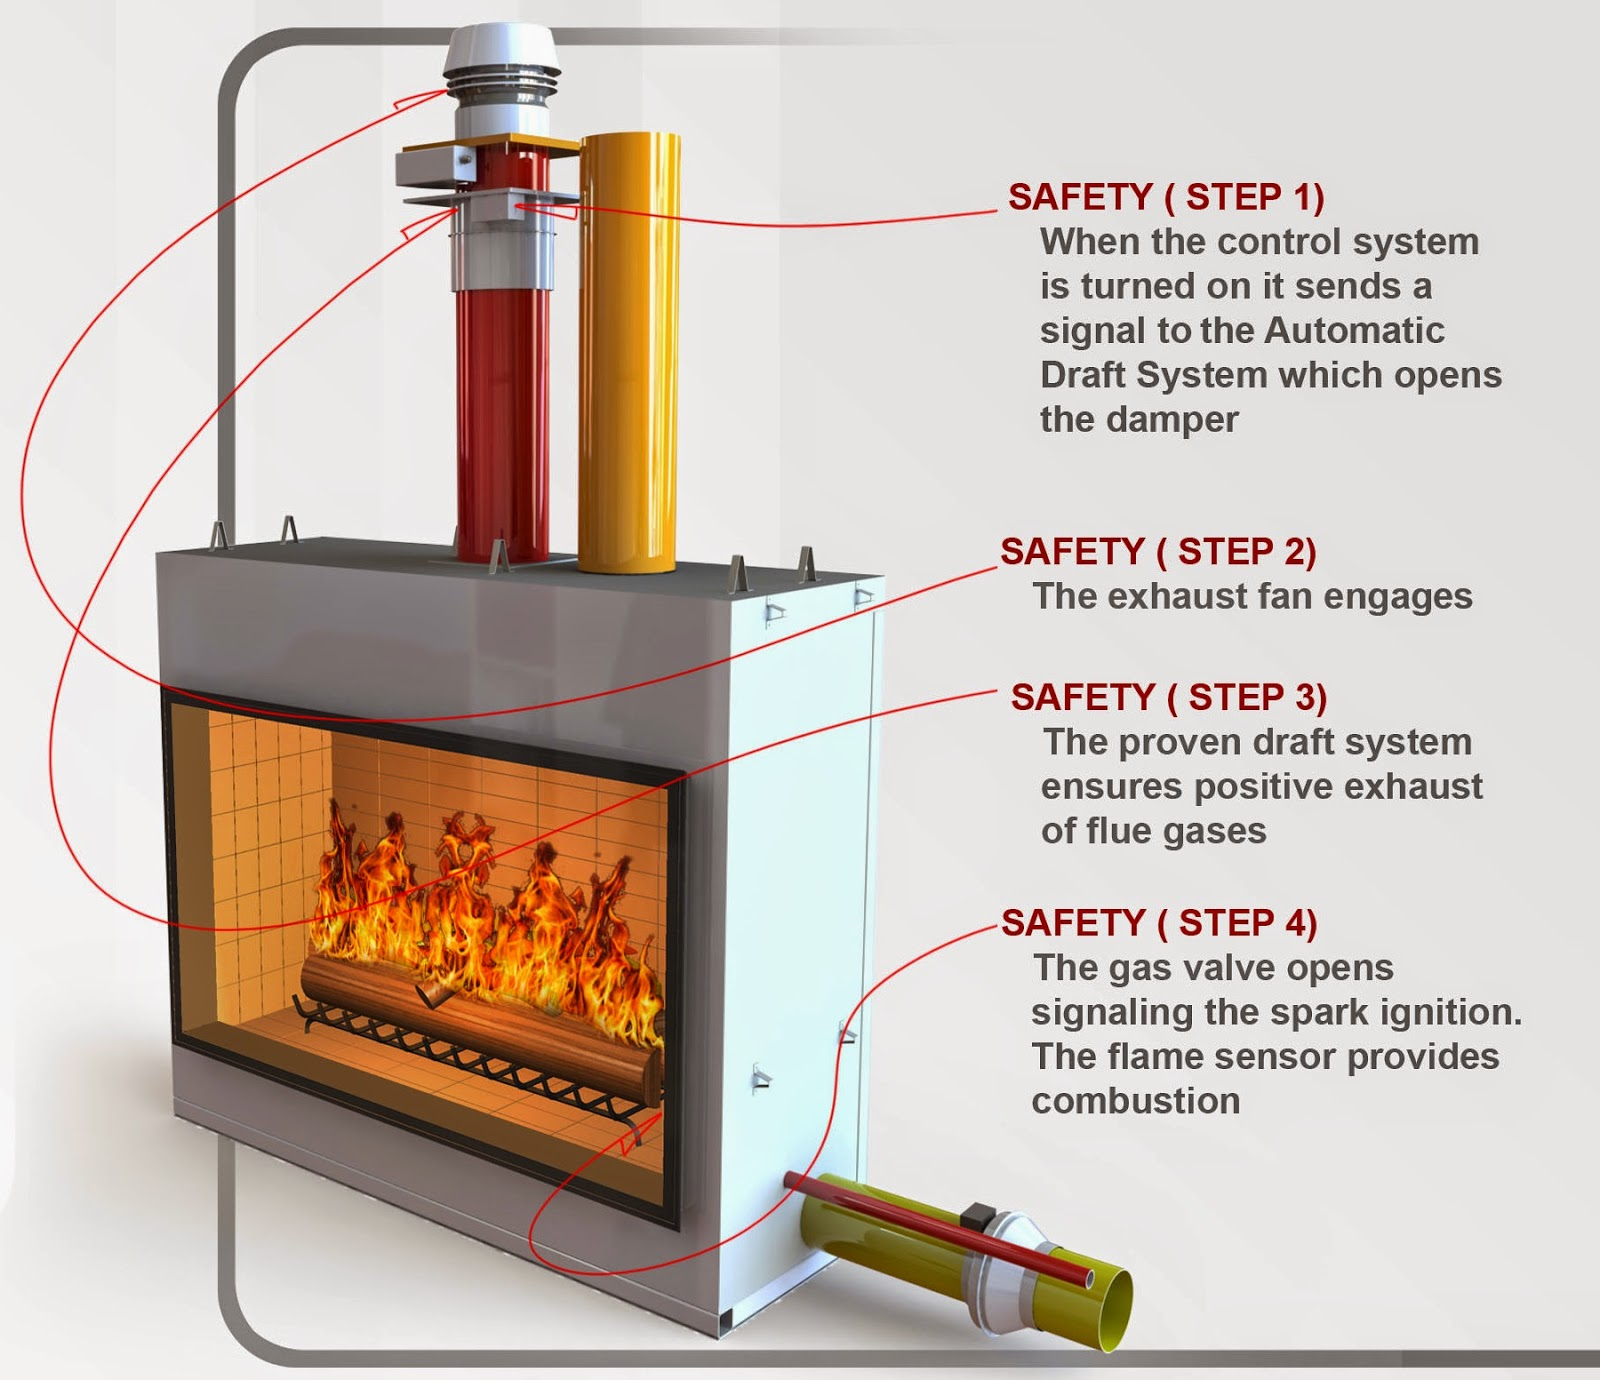 Acucraft's Sequence of Ignition Safety Steps for Gas Burner